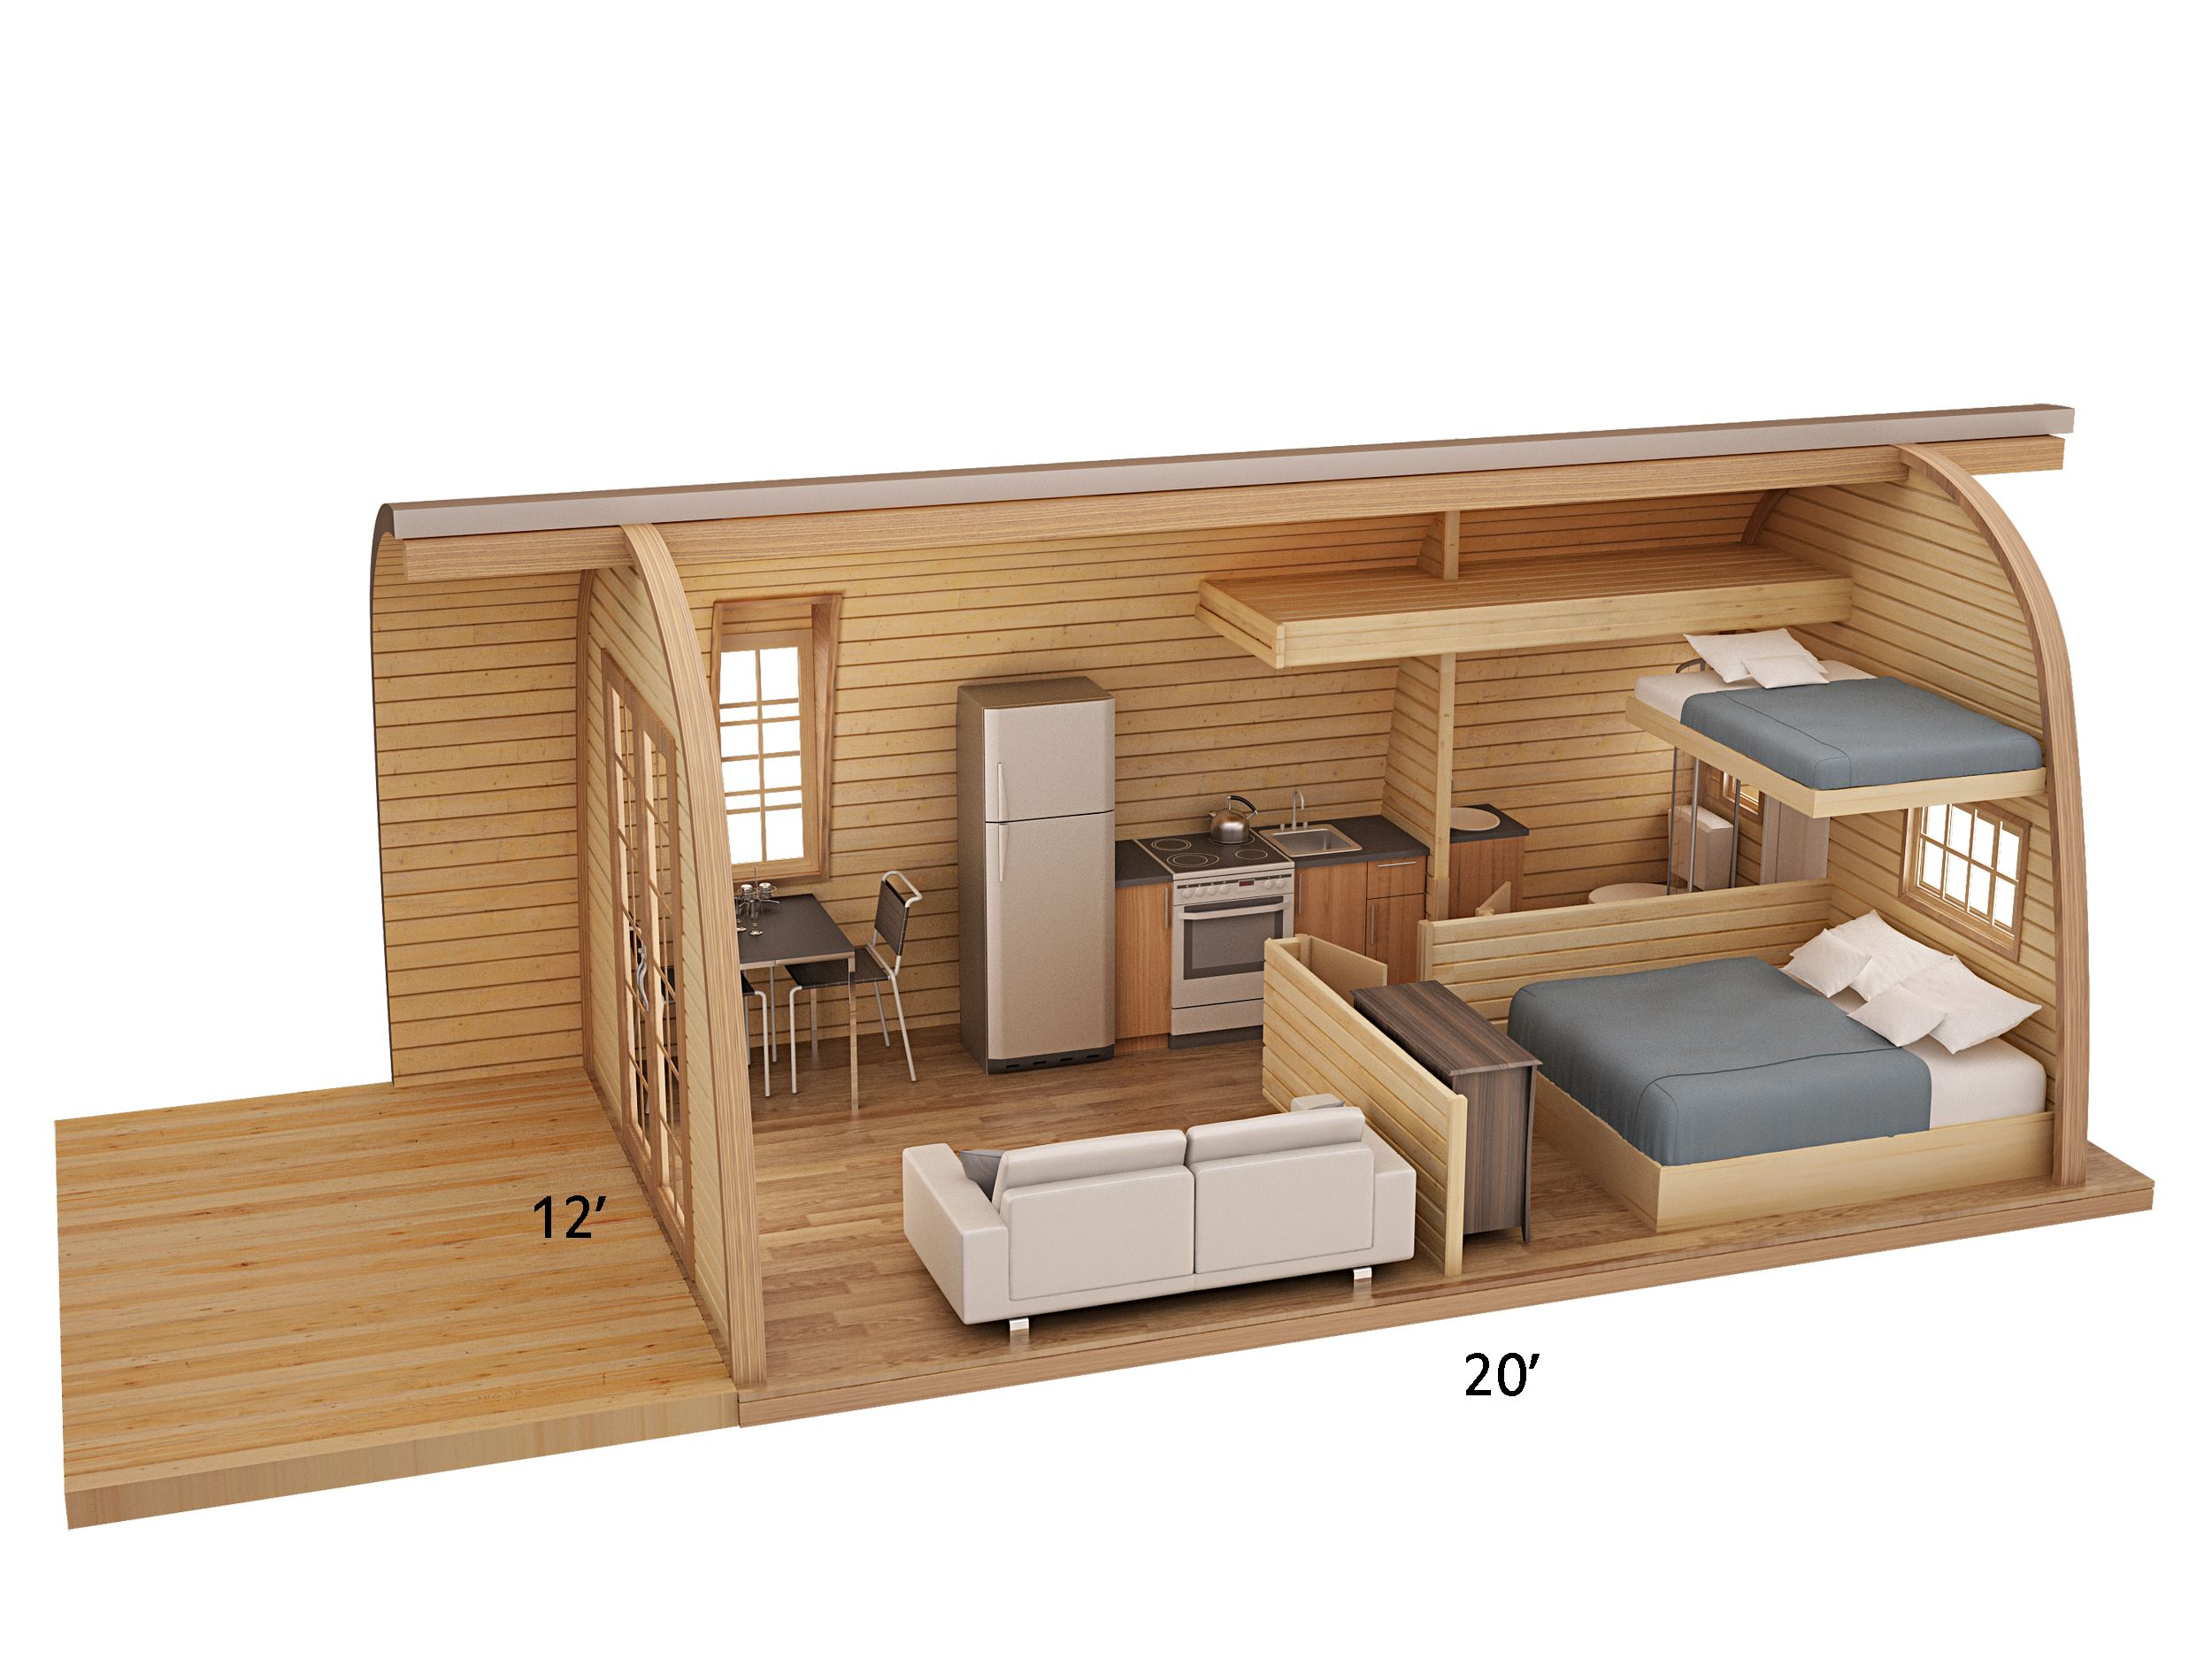 6x Plywood Kinderkamers : Pods google search small spaces in 2018 house tiny house